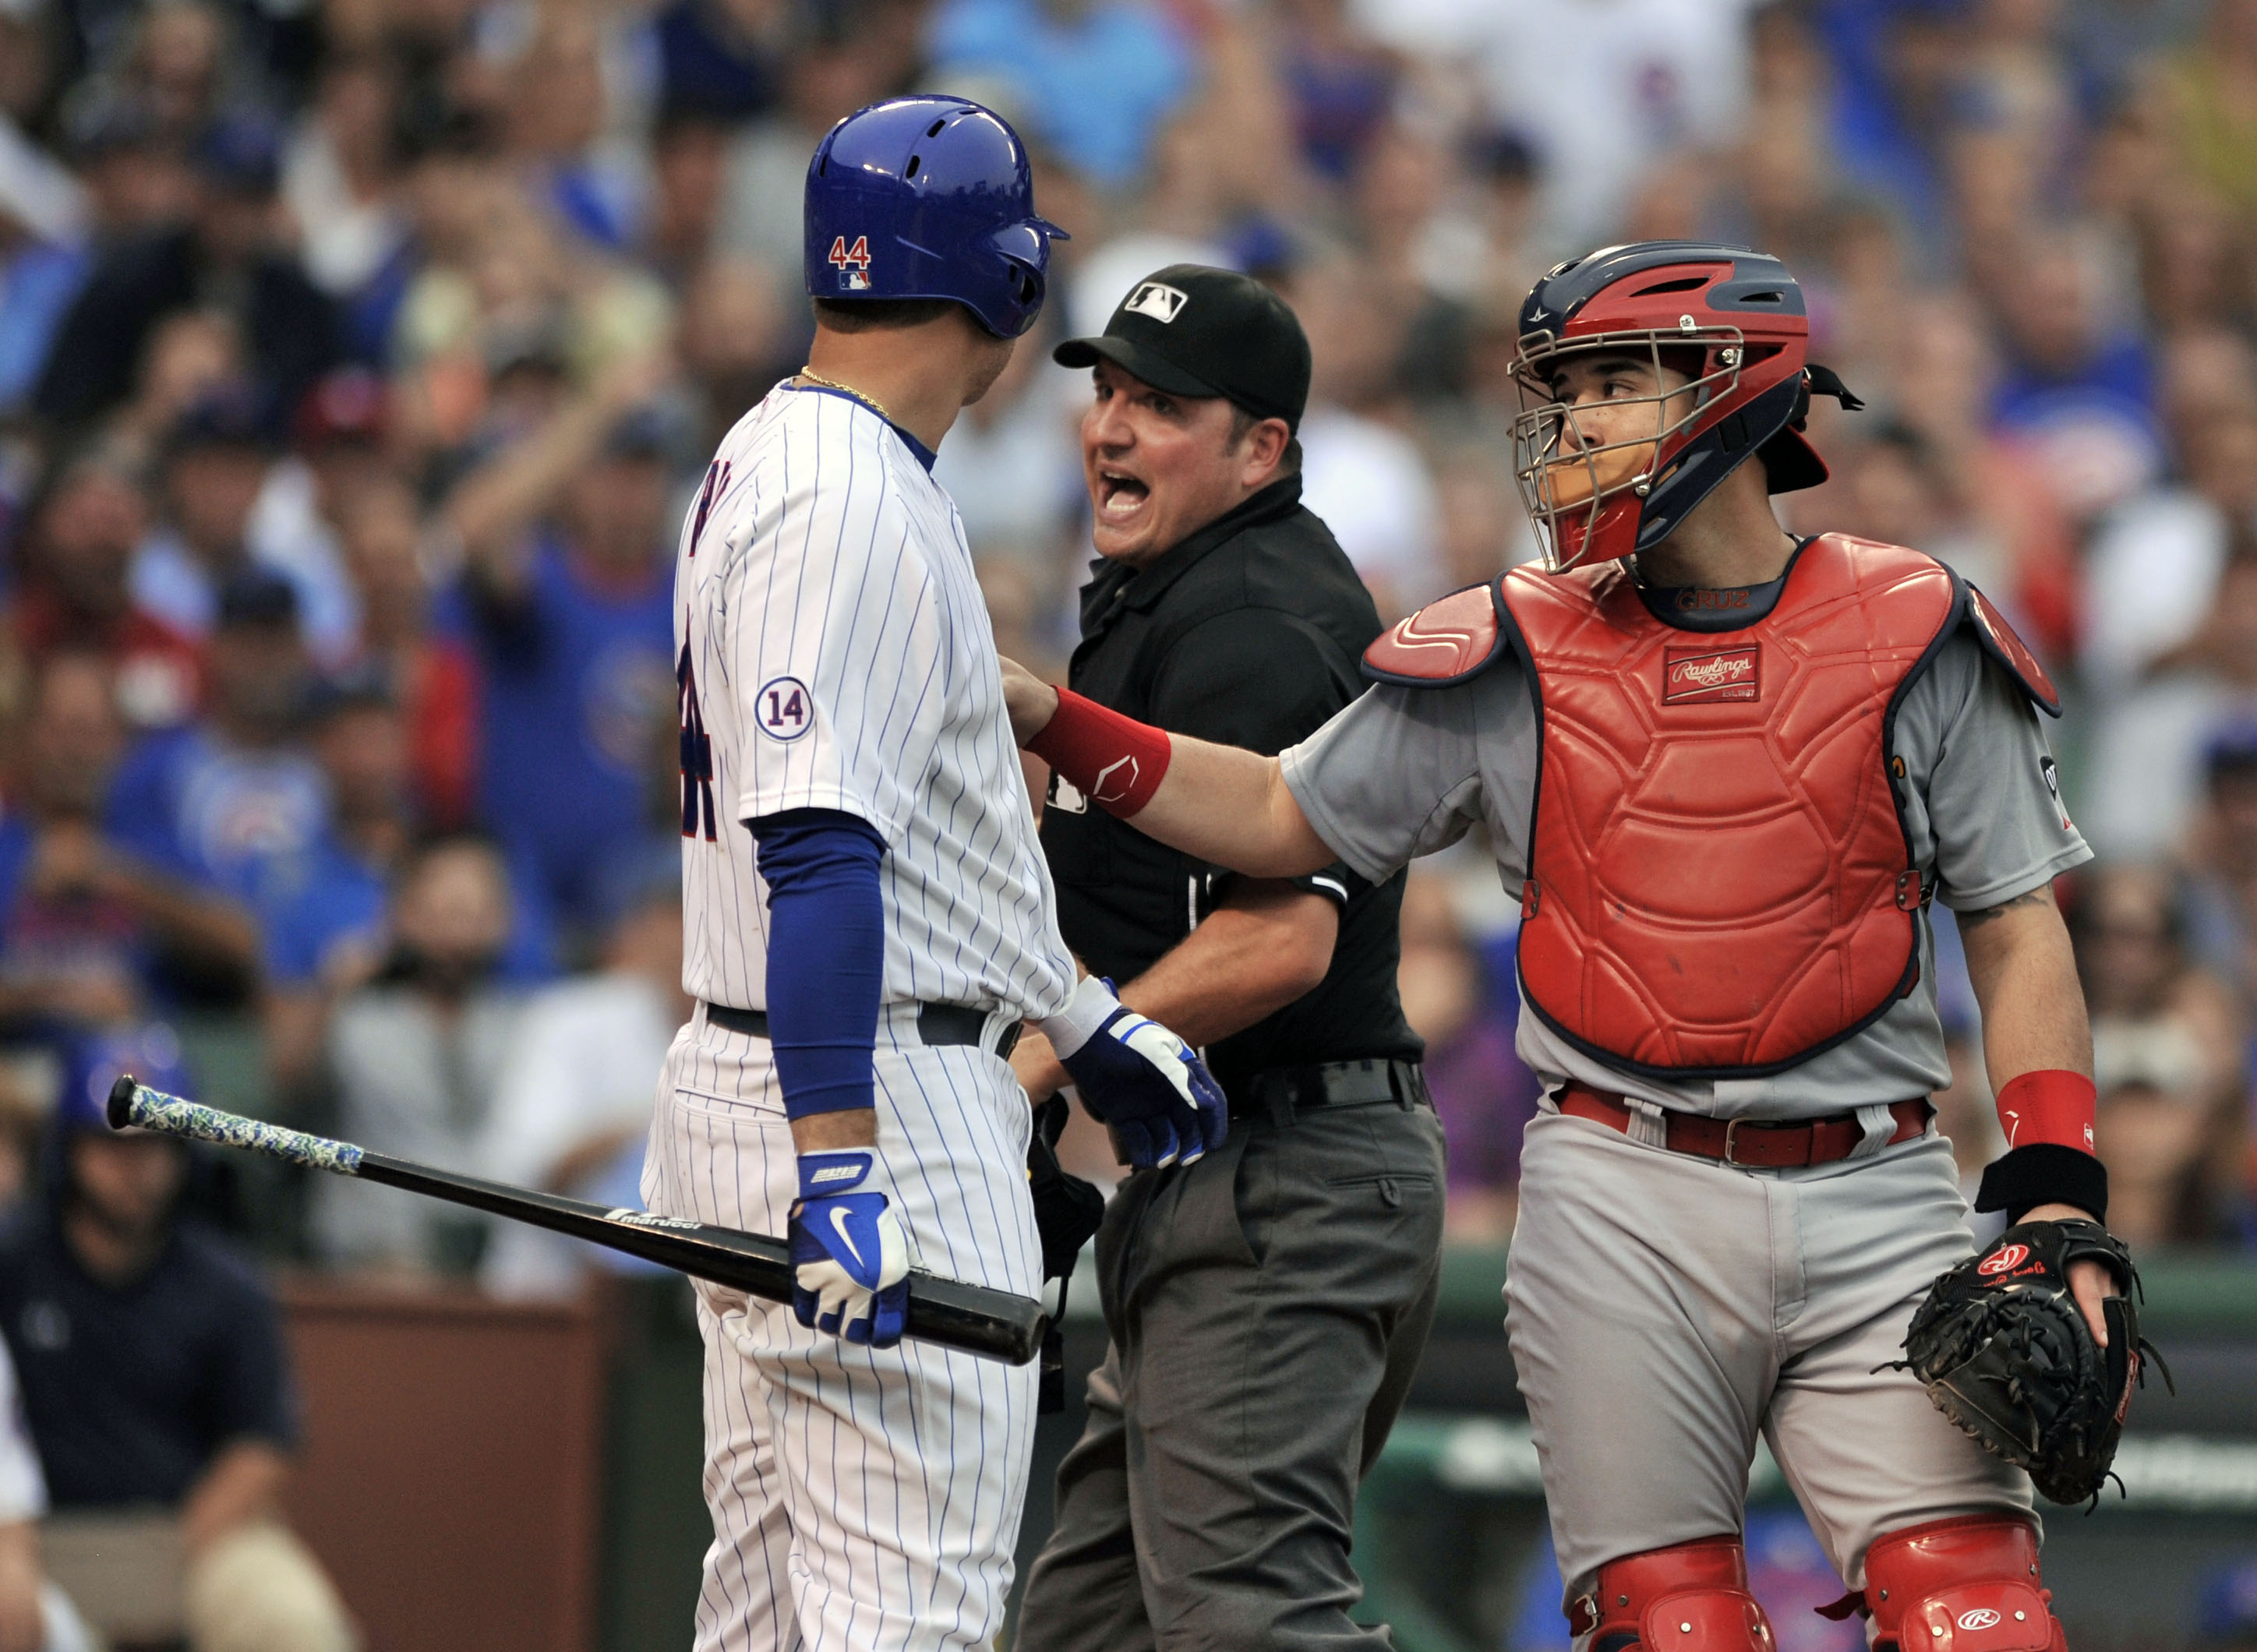 Chicago Cubs' Anthony Rizzo (44), argues with home plate umpire Dan Bellino after being hit by a pitch while St. Louis Cardinals catcher Tony Cruz (48), holds Rizzo back from charging the mound during the seventh inning of a baseball game Friday, Sept. 18